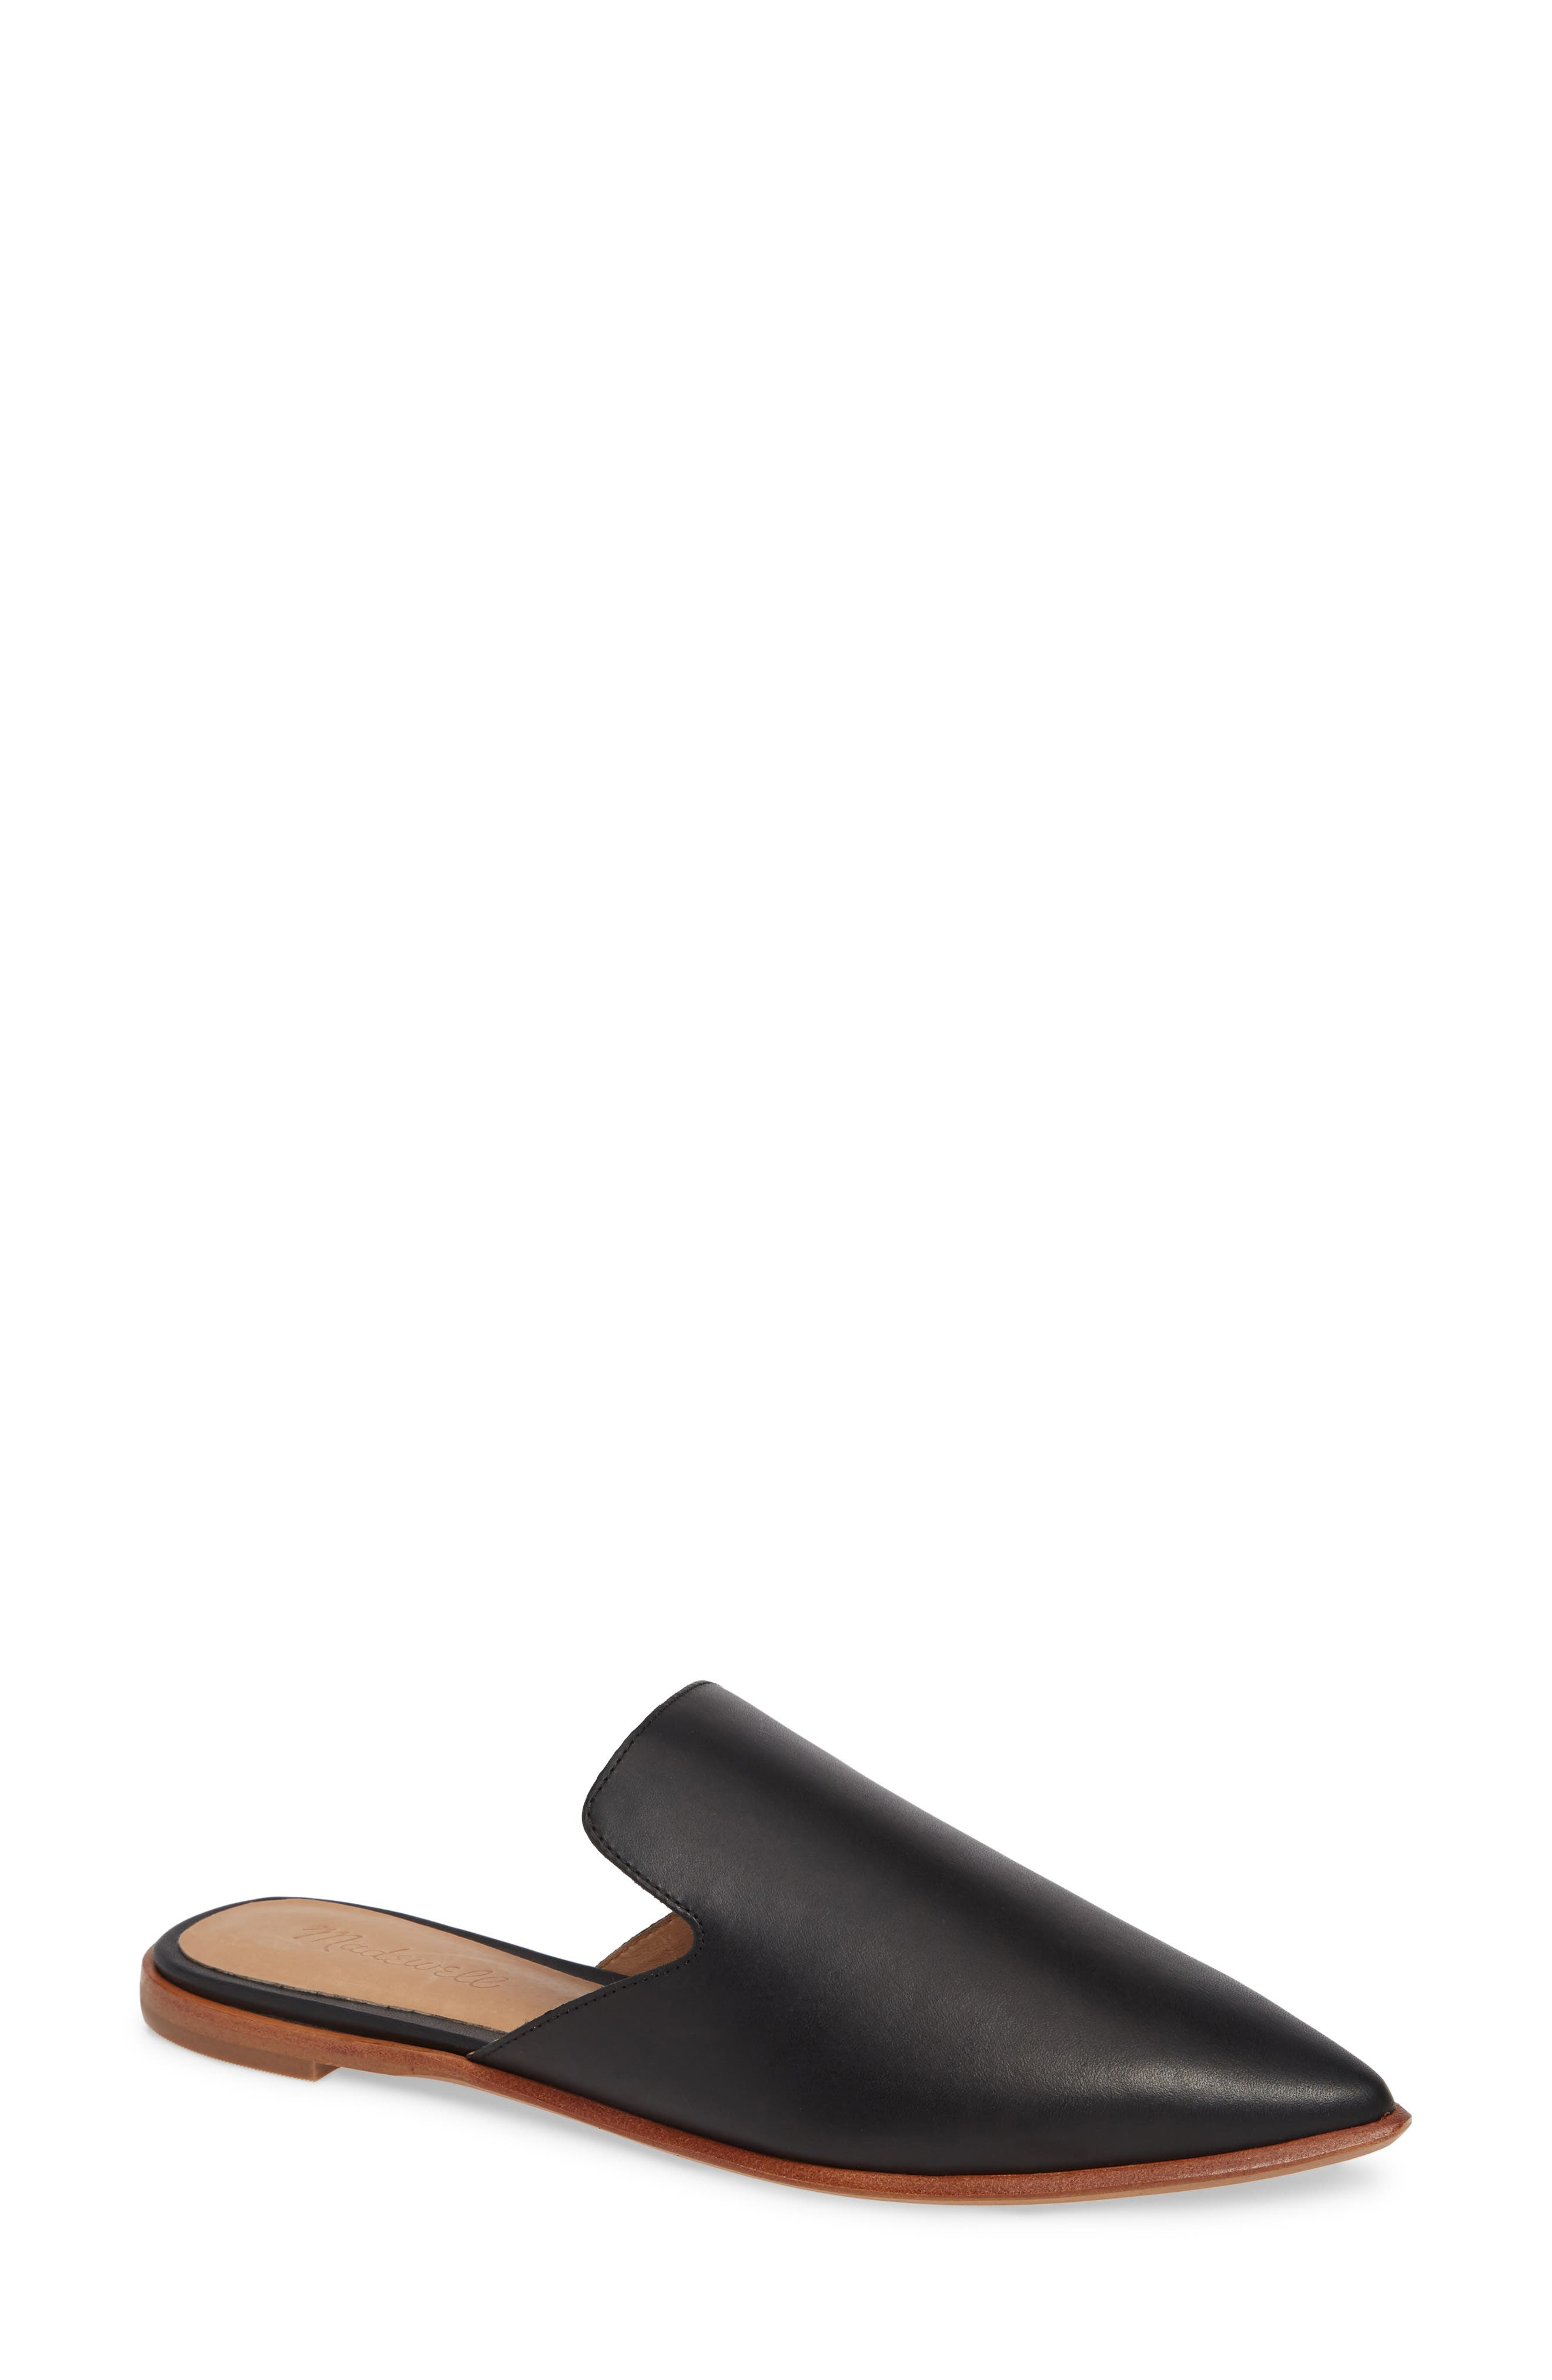 MADEWELL The Gemma Mule, Main, color, TRUE BLACK LEATHER